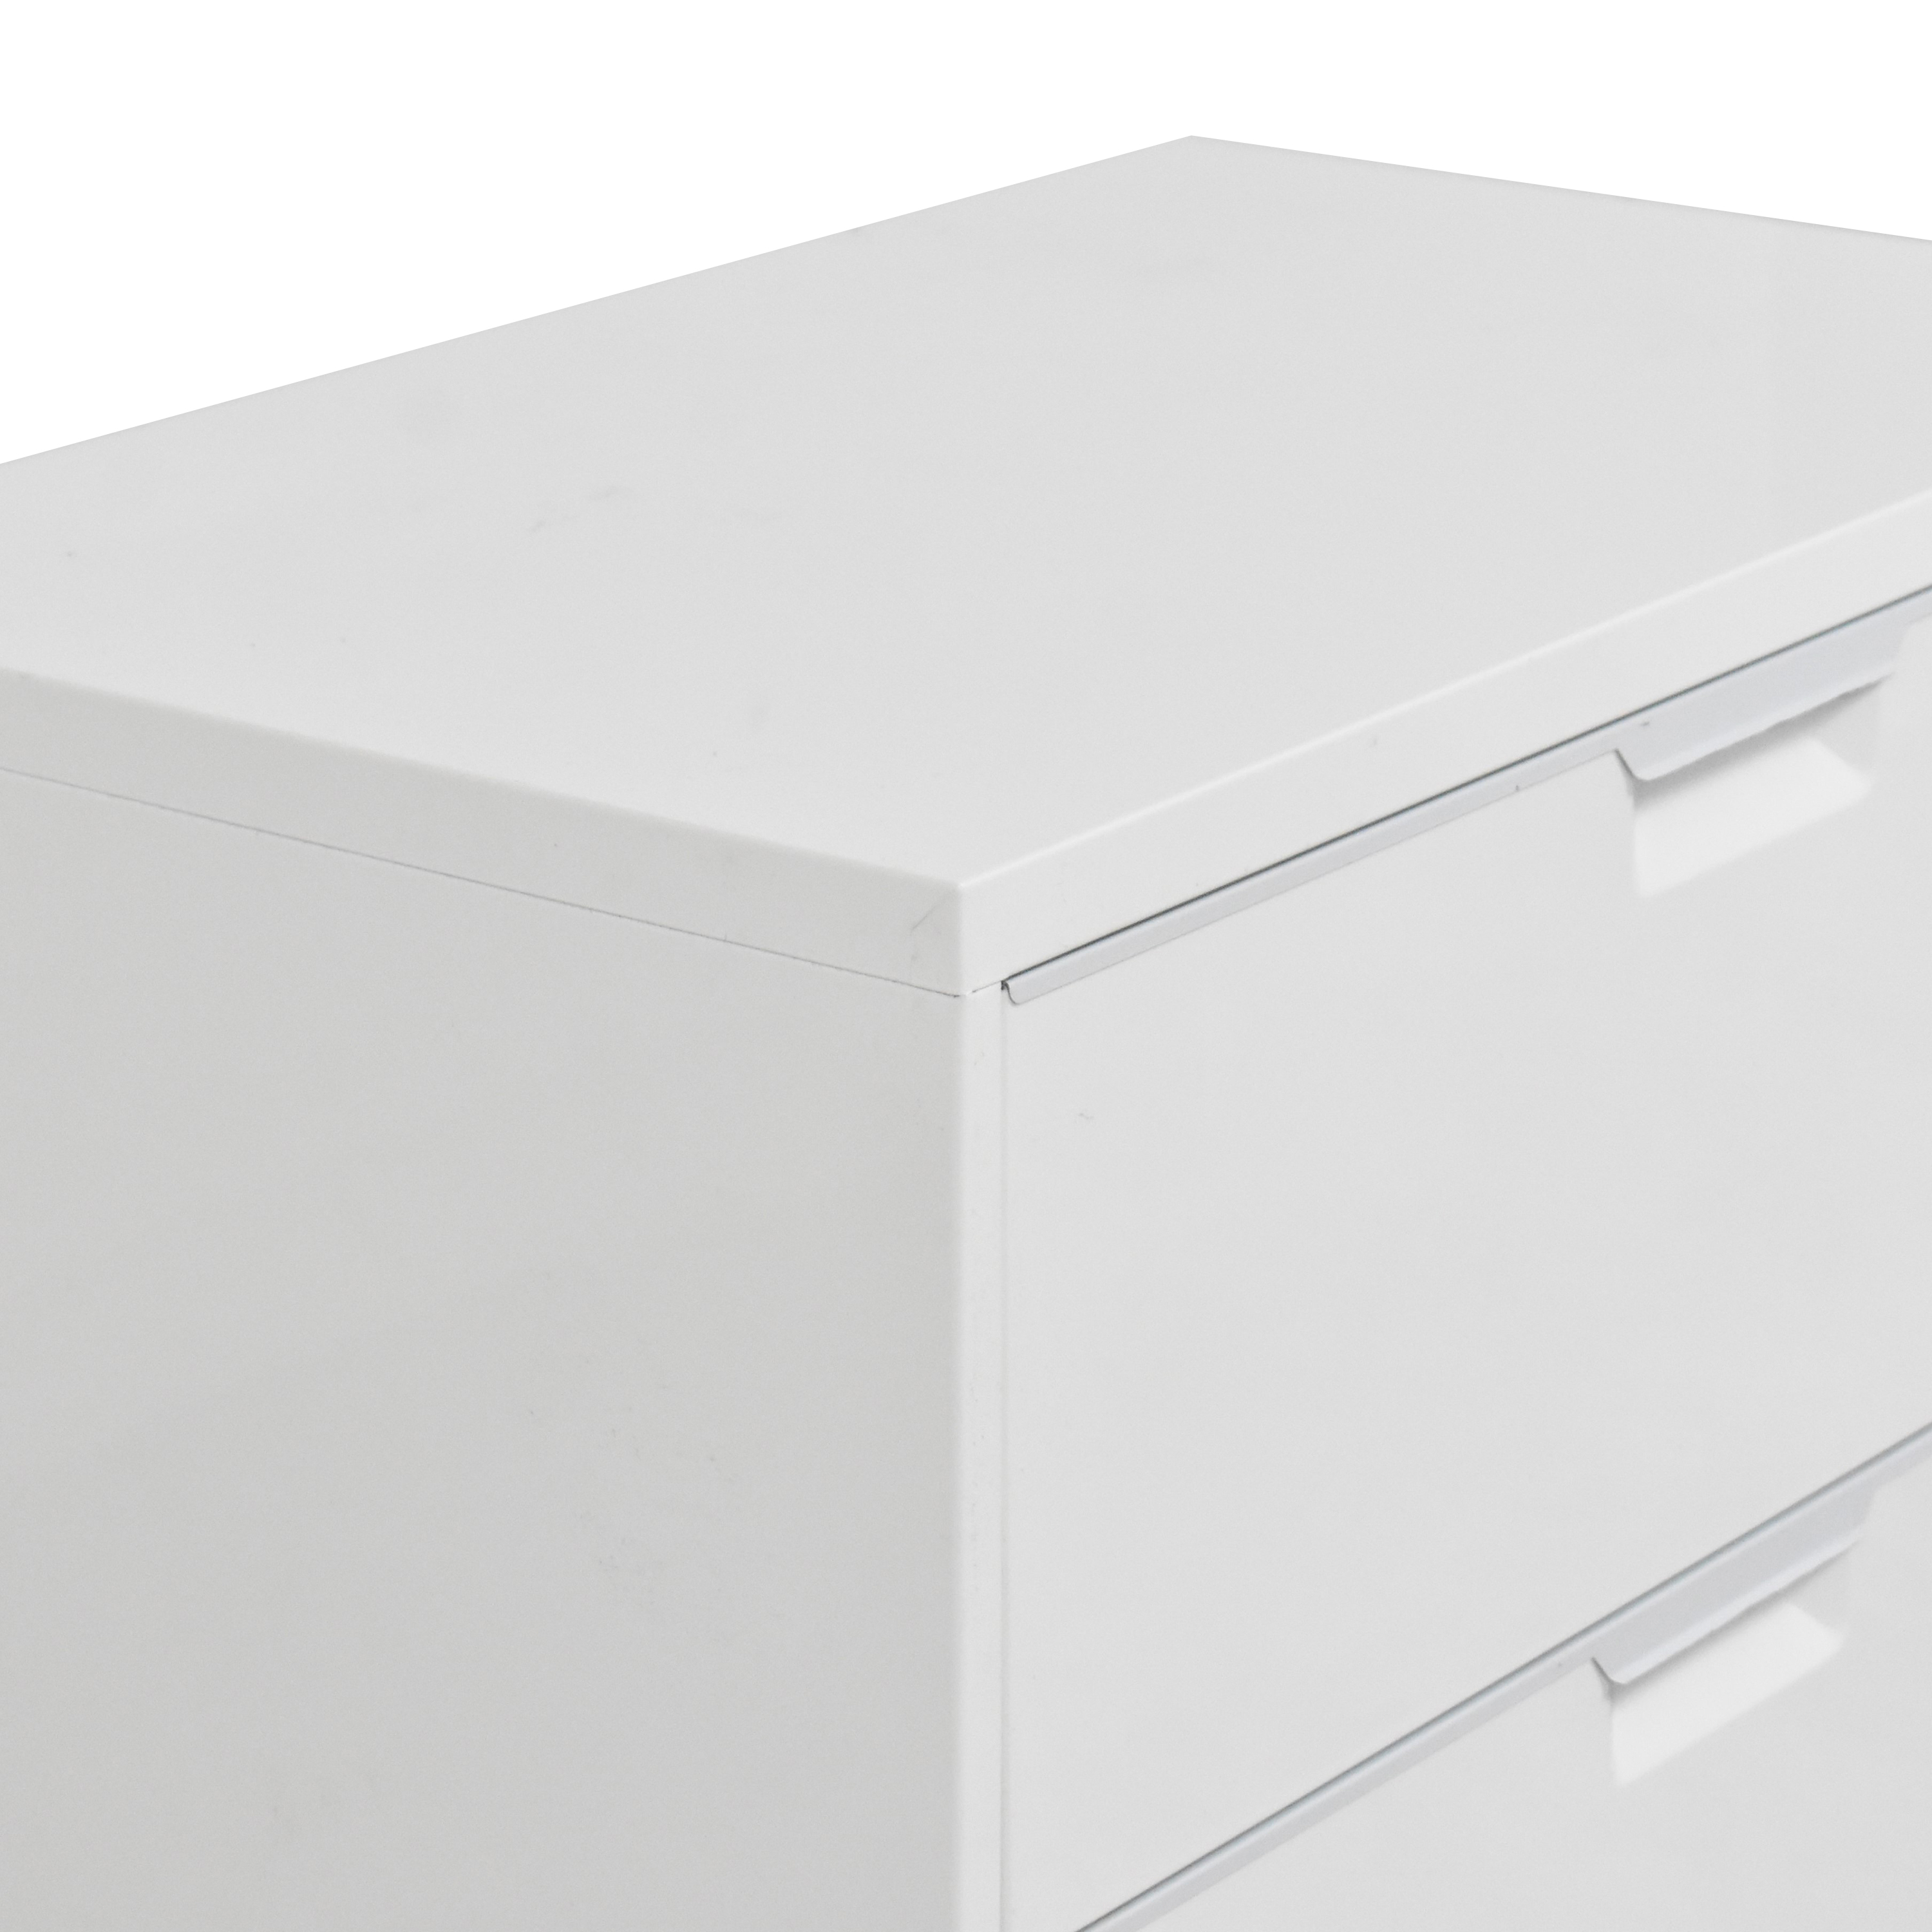 CB2 CB2 TPS Wide Filing Cabinet Storage